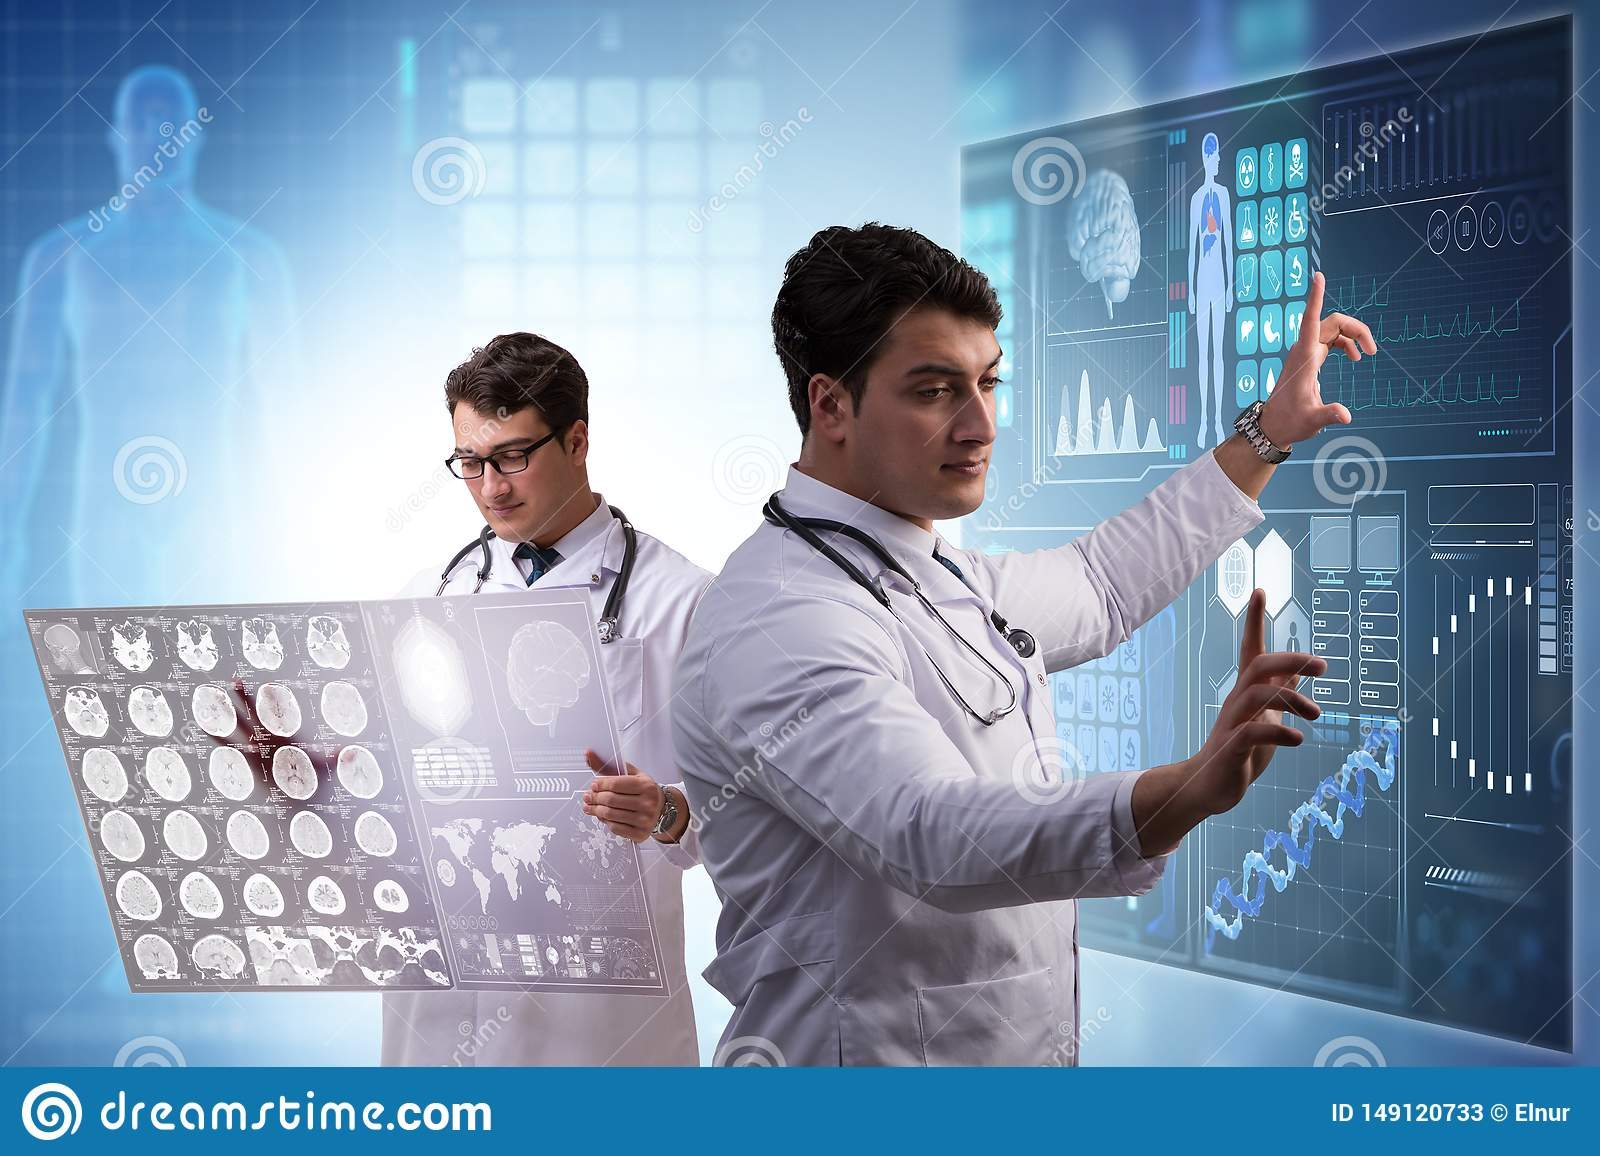 The doctor in telemedicine concept looking at x-ray image